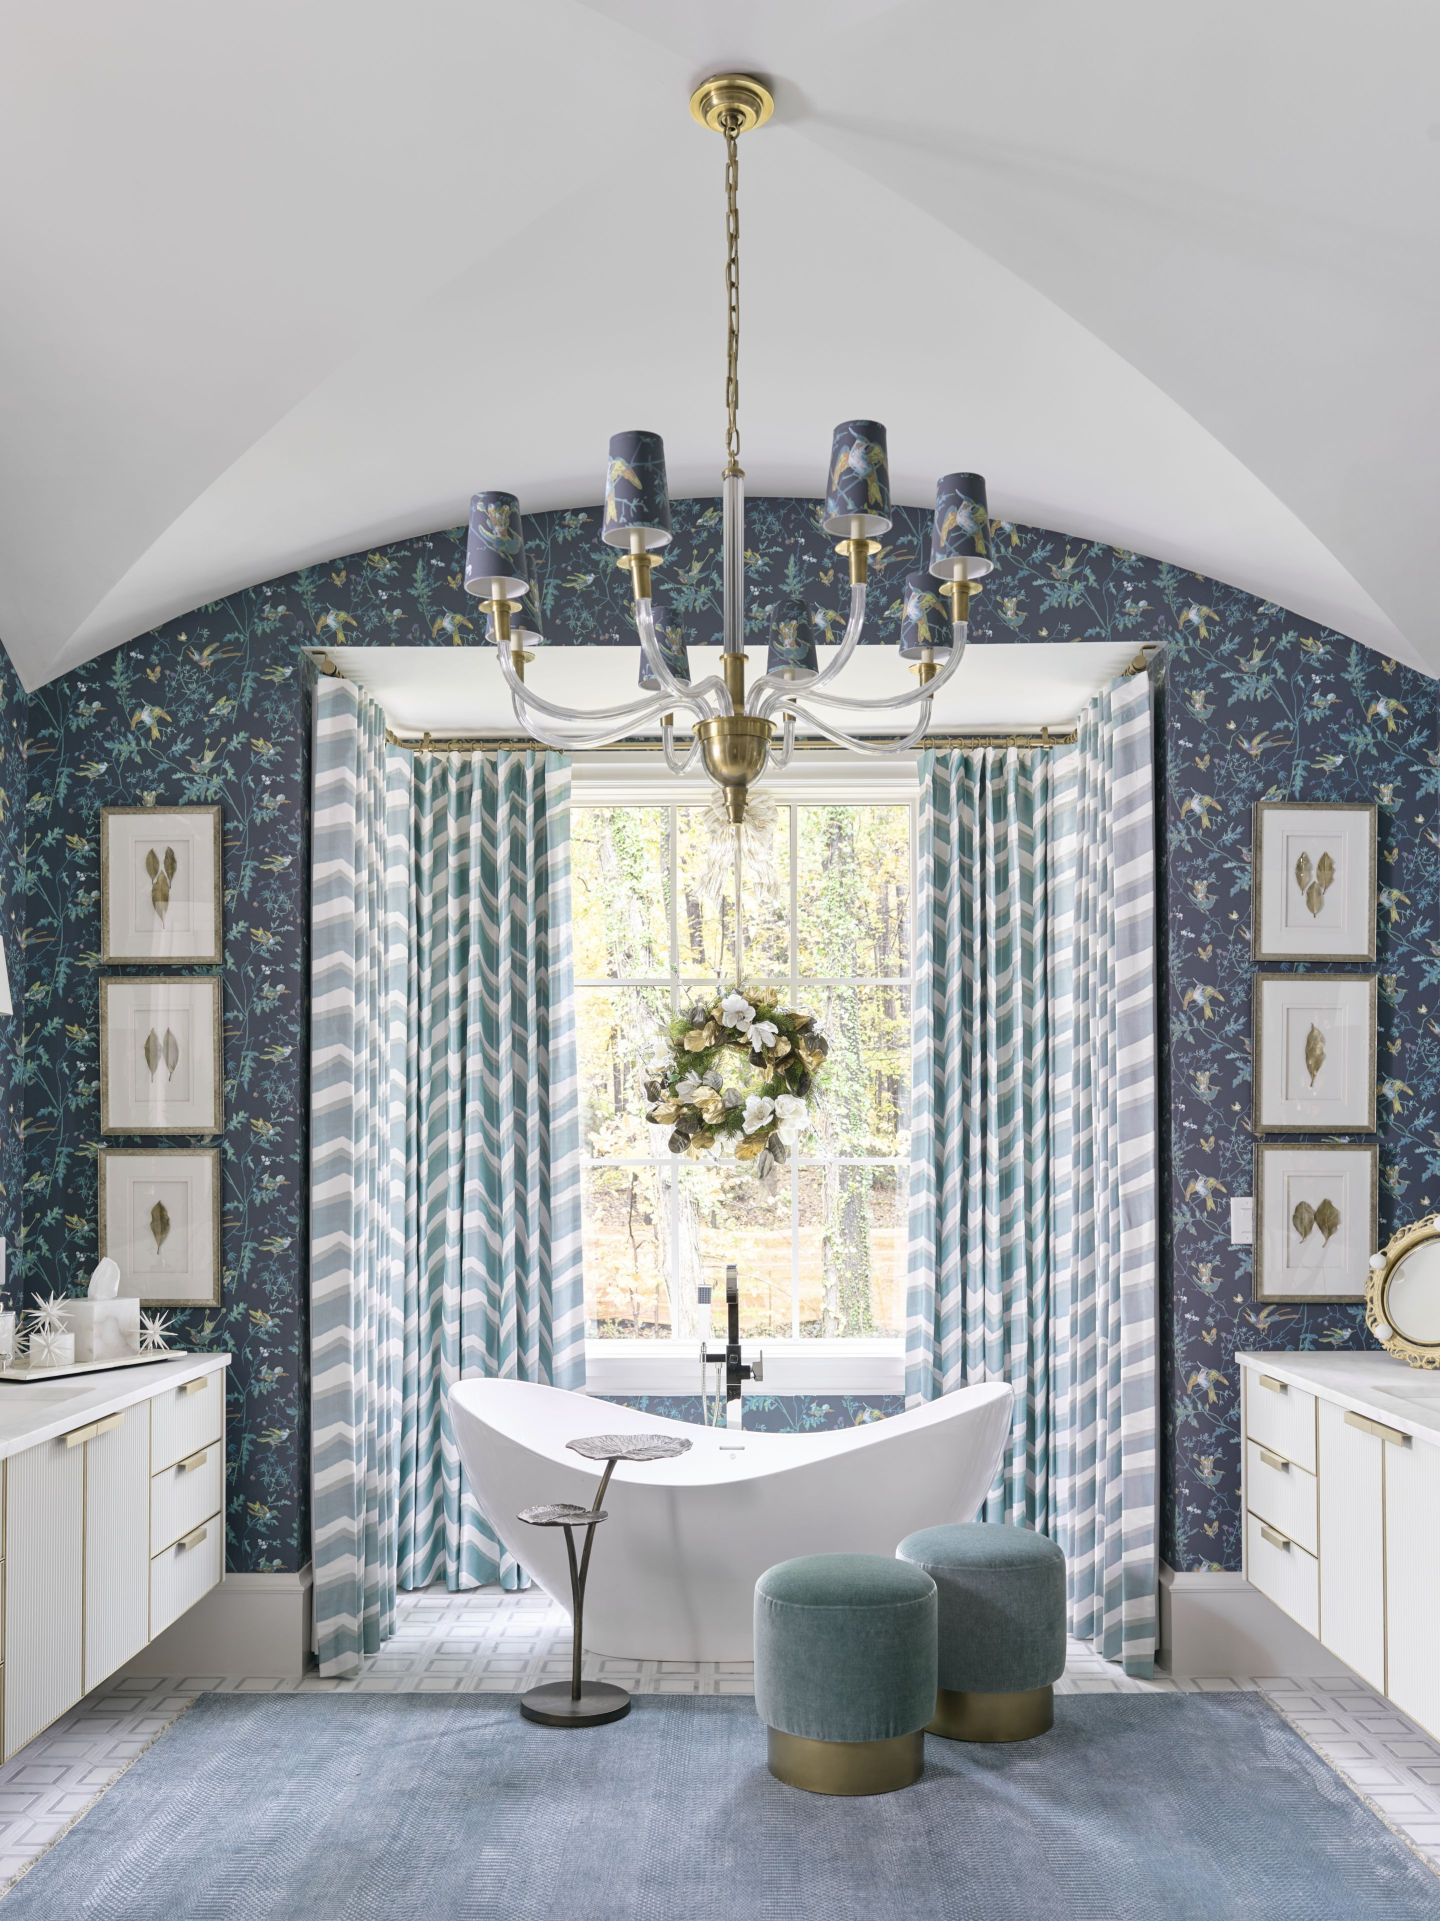 AHL_181113_showhouse32078_Chris-Socci-with-Kingdom-Woodworks-cabinetry Home for the Holidays 2018: Atlanta, GA Style